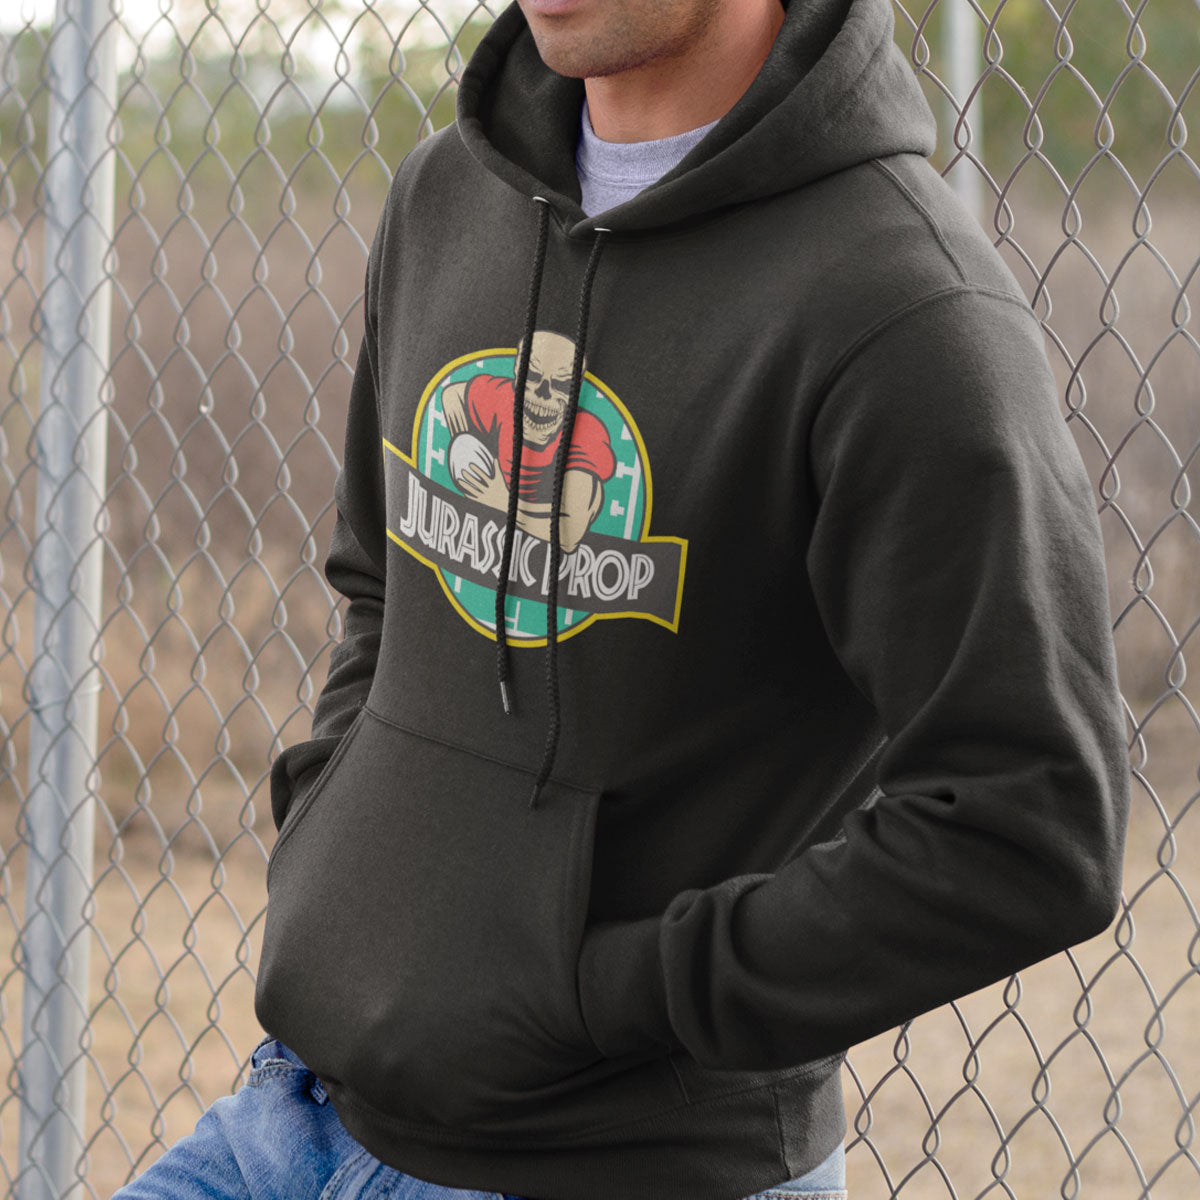 Jurassic Prop Rugby Hoody - First XV rugbystuff.com